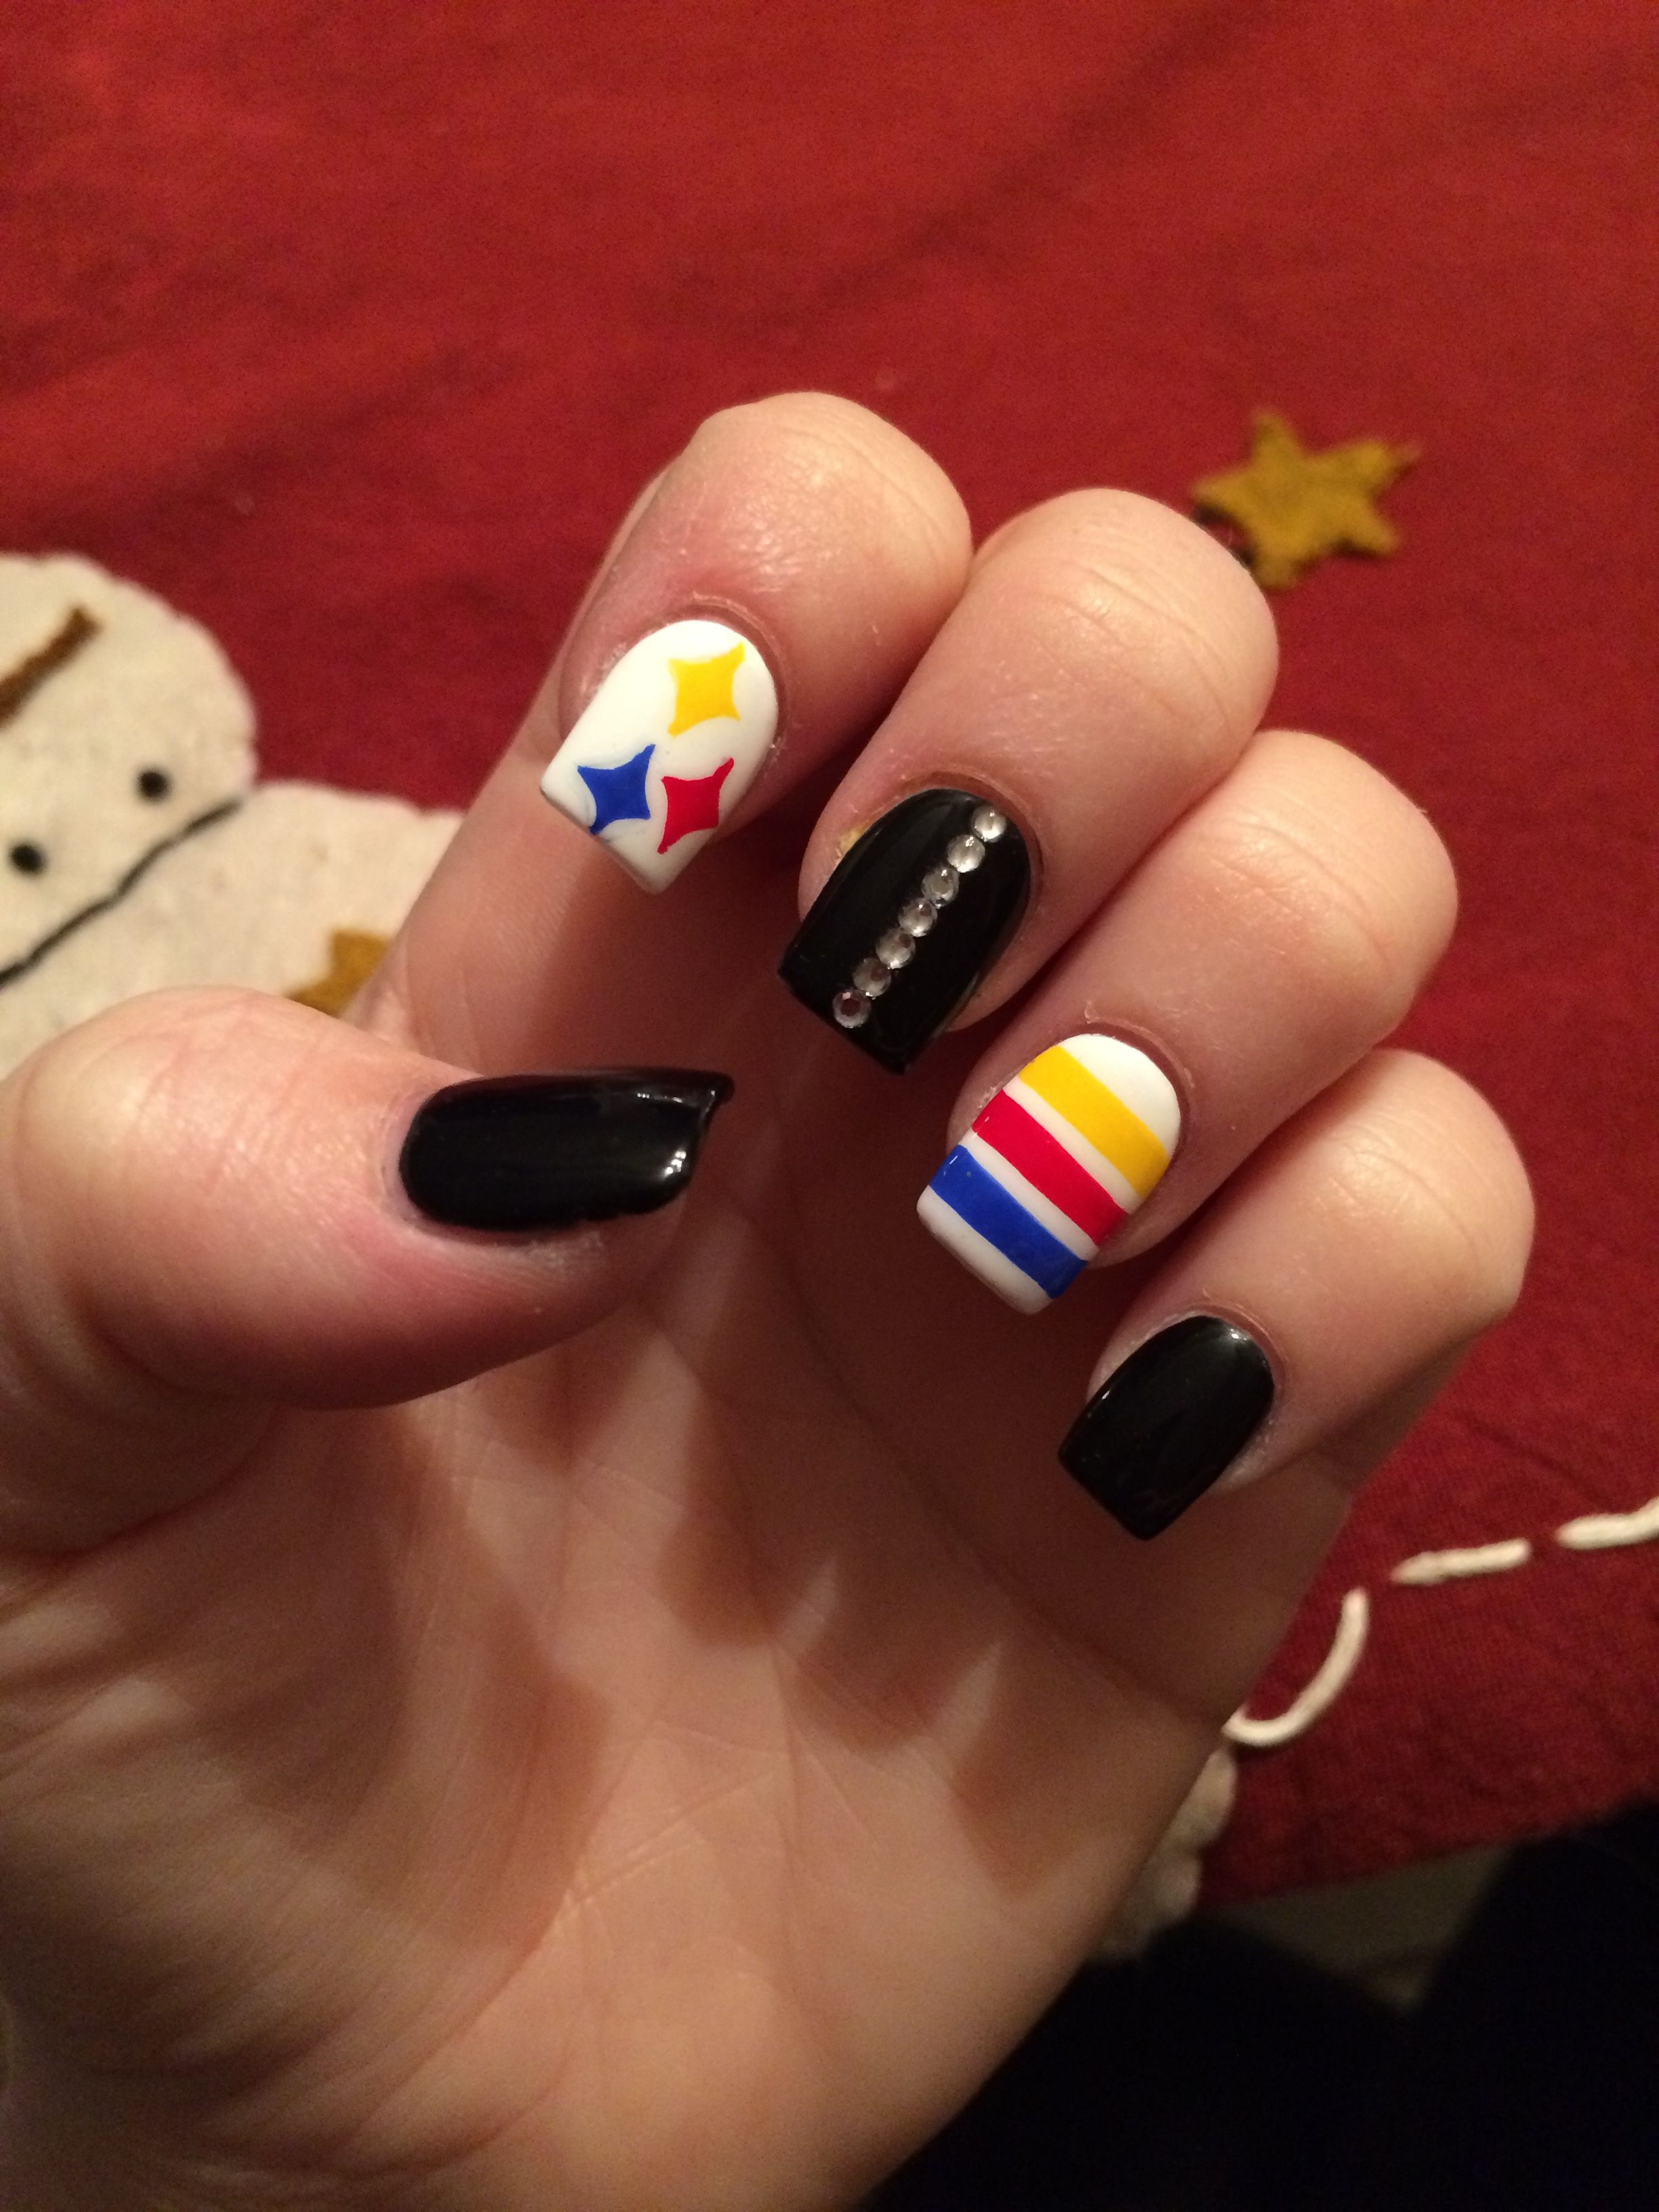 Pittsburgh nails steelers nails black and gold nails pittsburgh nails steelers nails black and gold prinsesfo Choice Image